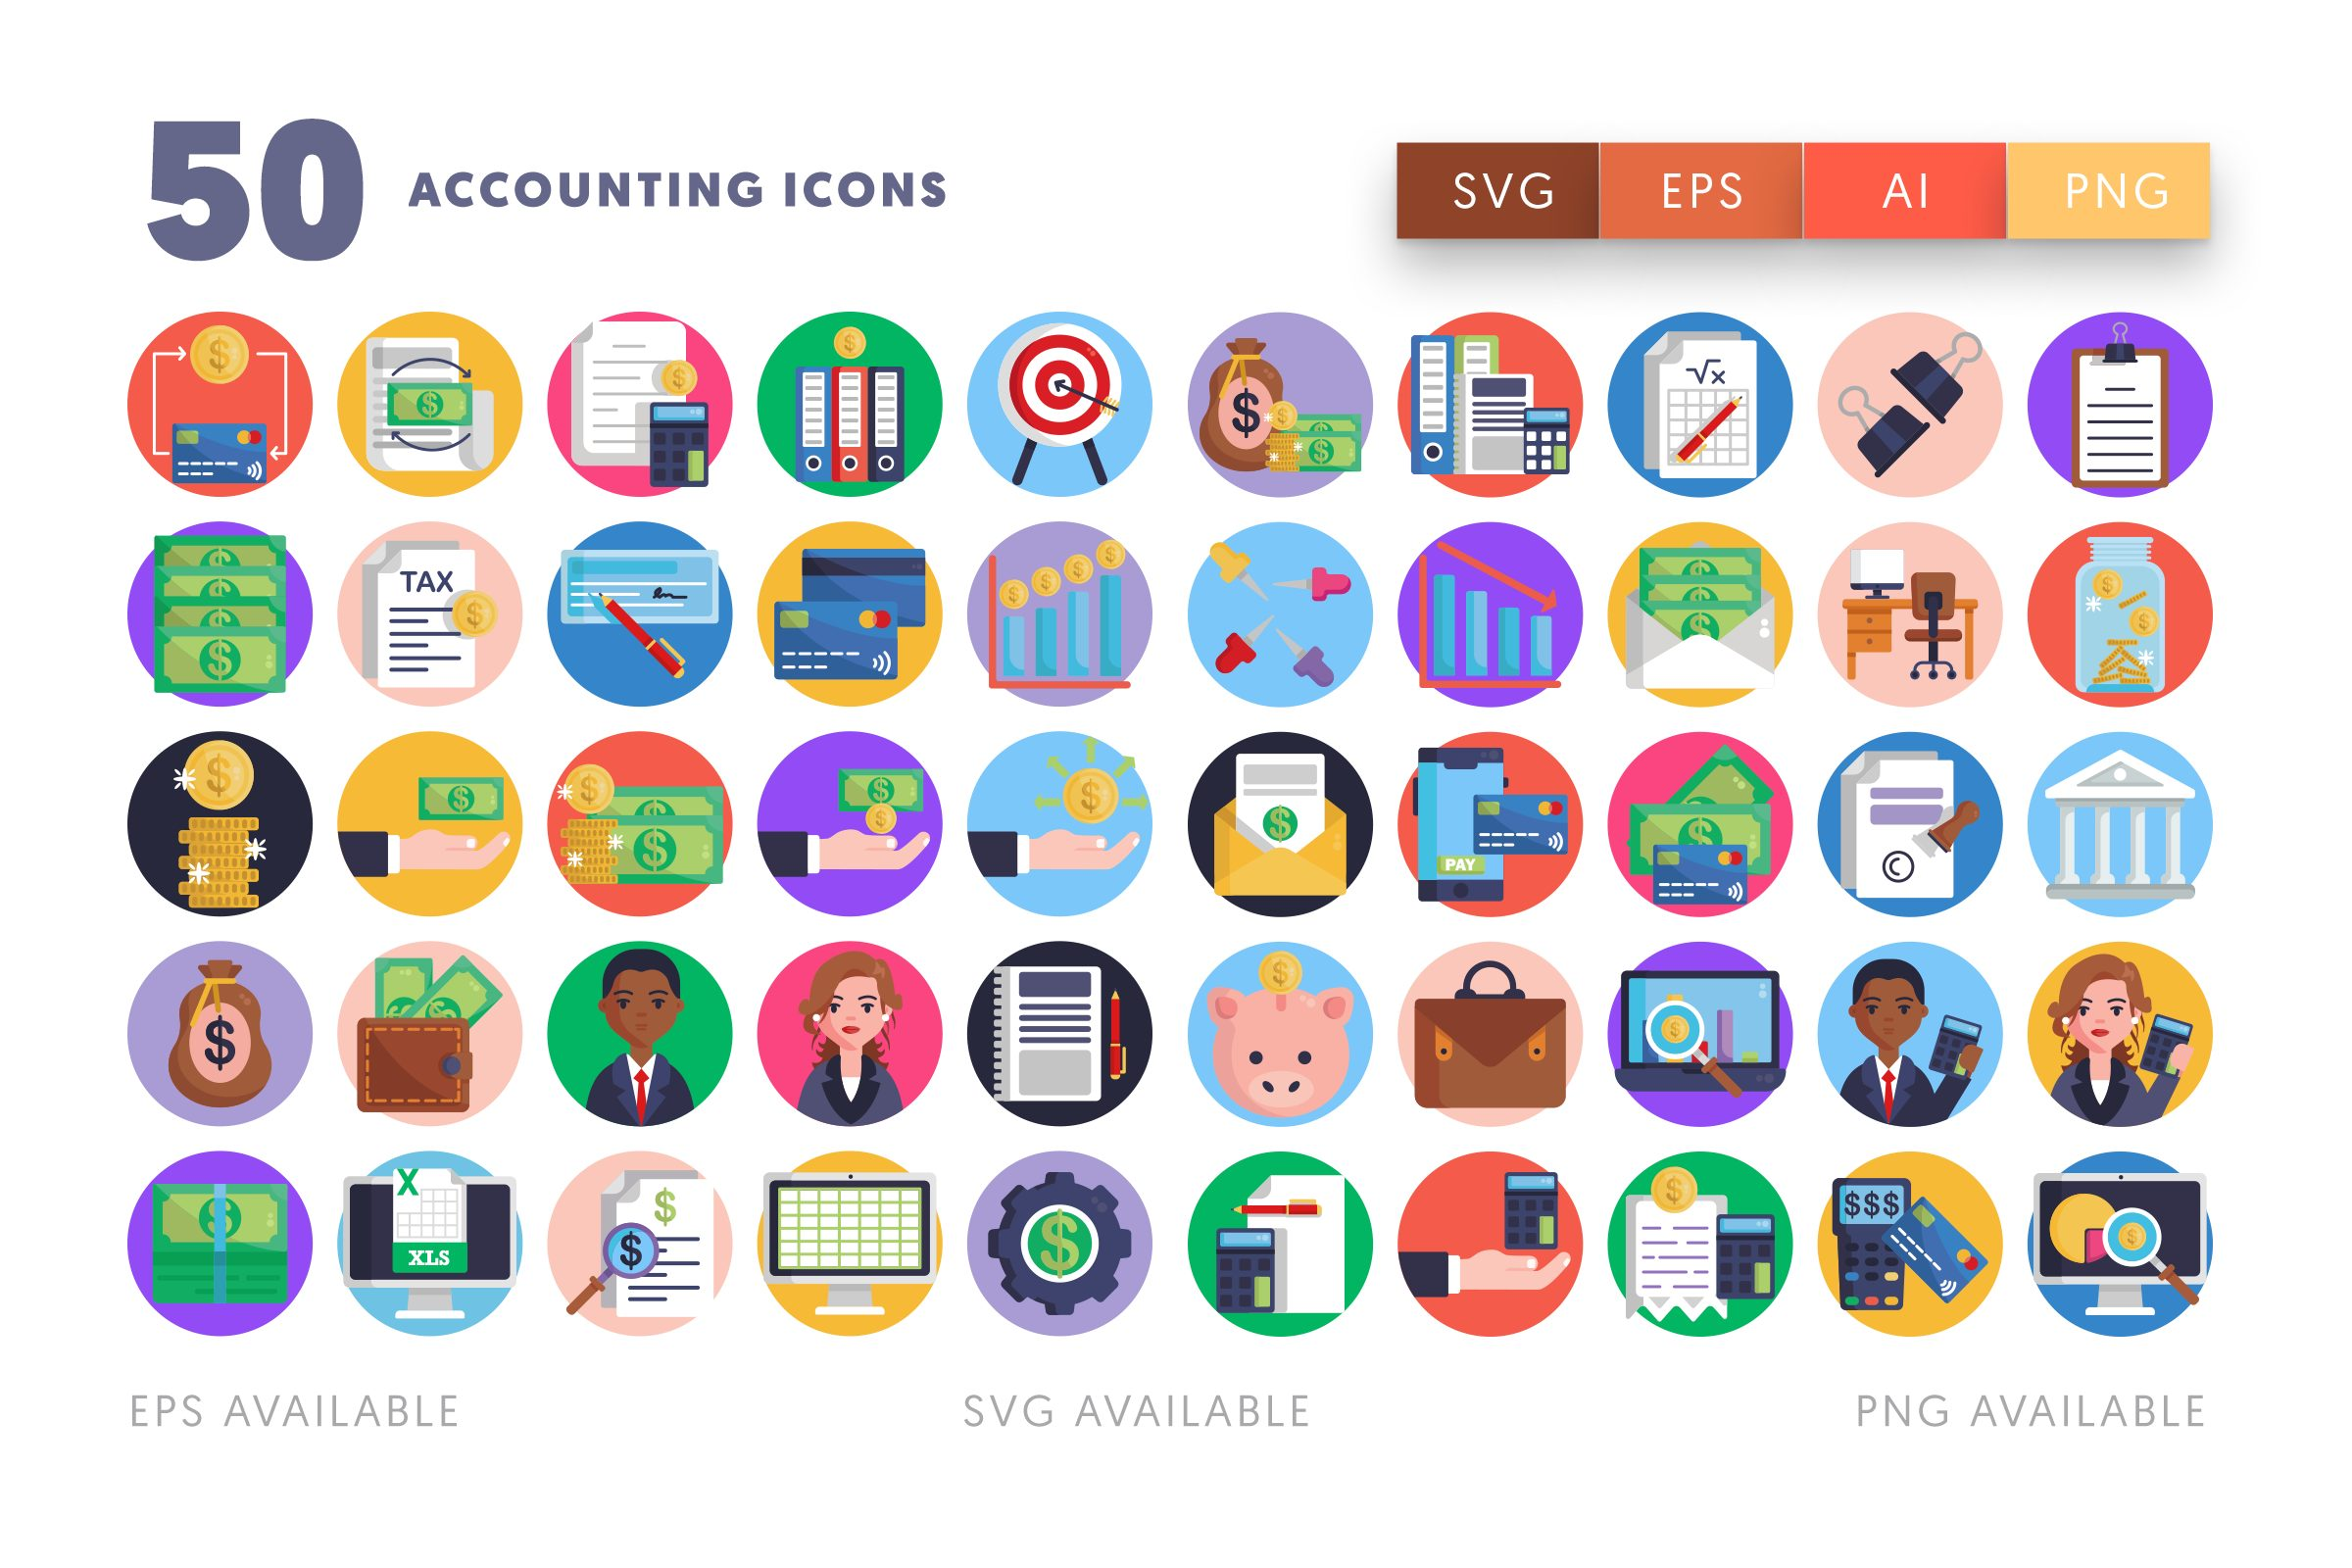 Accounting icons png/svg/eps